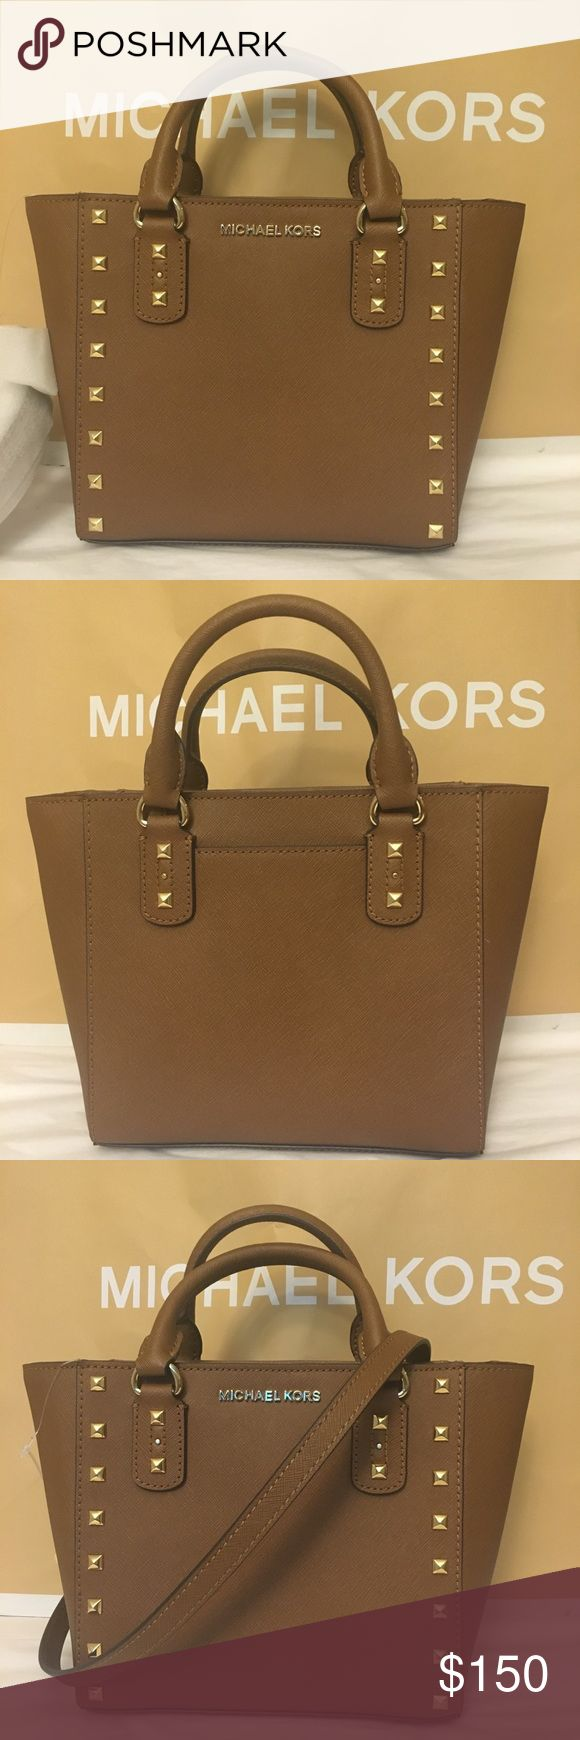 "🍀🌹🌸Michael Kors sandrine studd 🌸🌹🍀 Brand new  Dimension: 11""L 9""H 4""W. Color: Brown Michael Kors Bags Crossbody Bags"